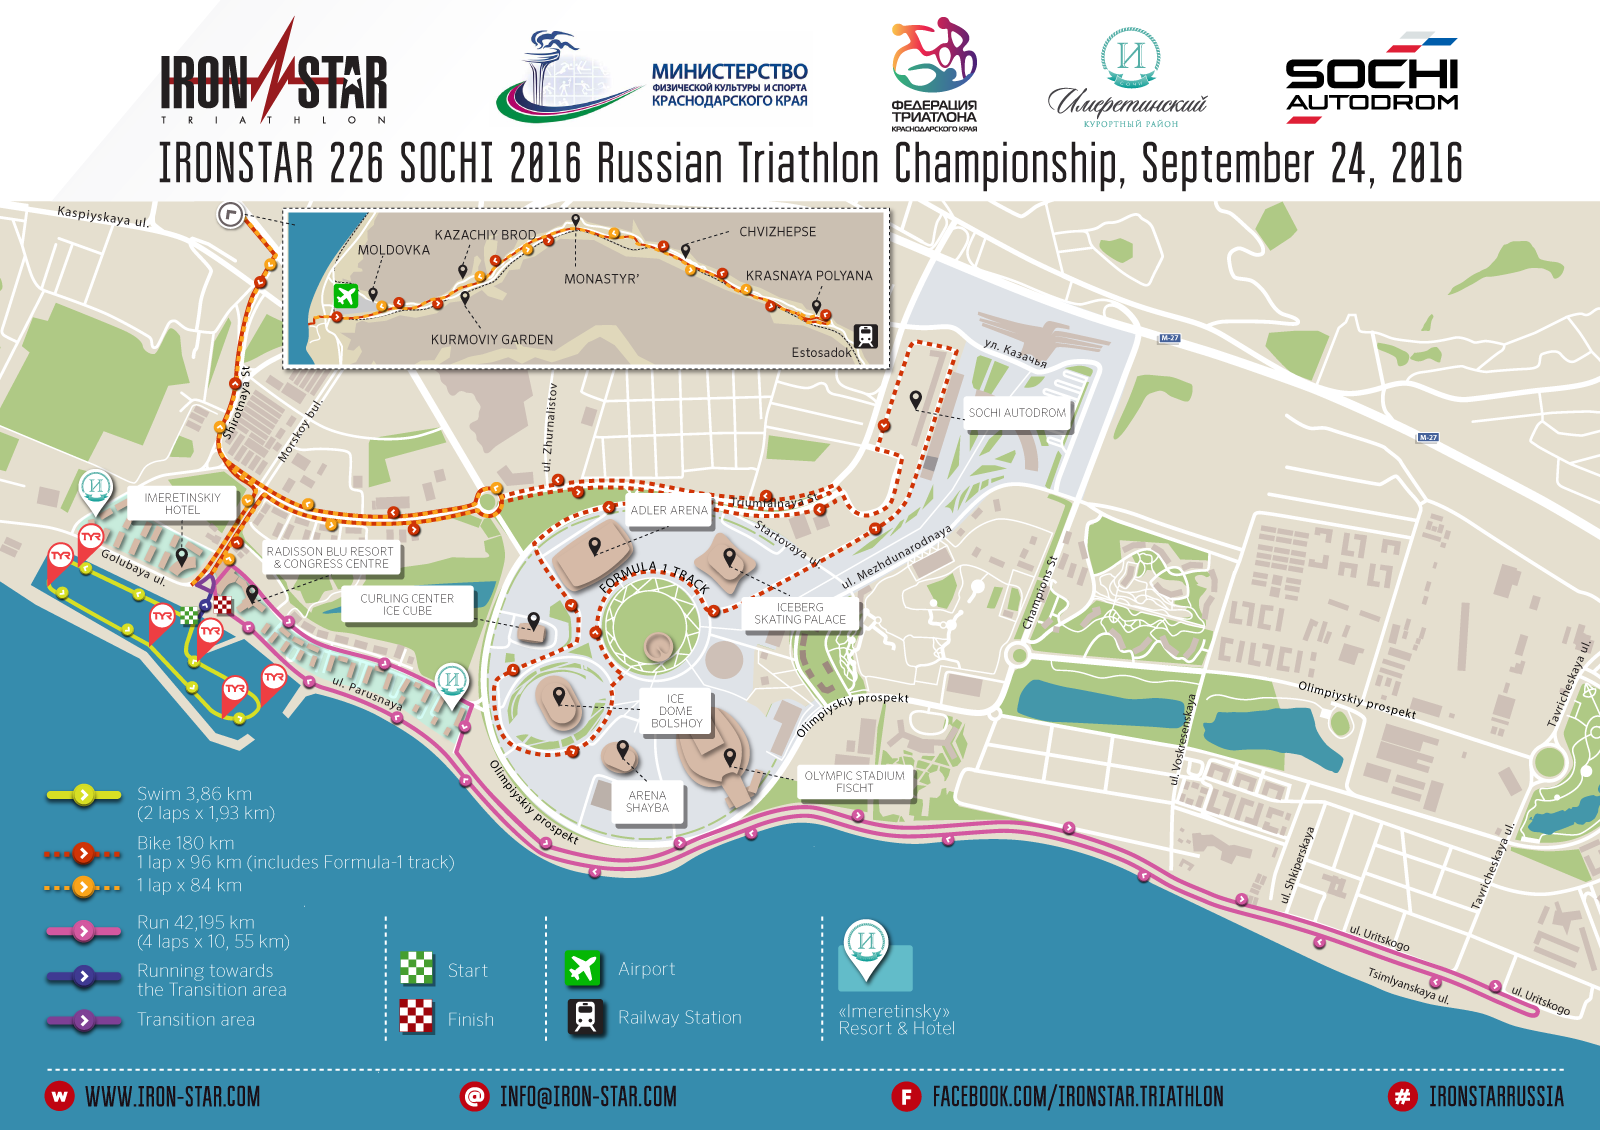 Route of IRONSTAR 226 SOCHI 2016